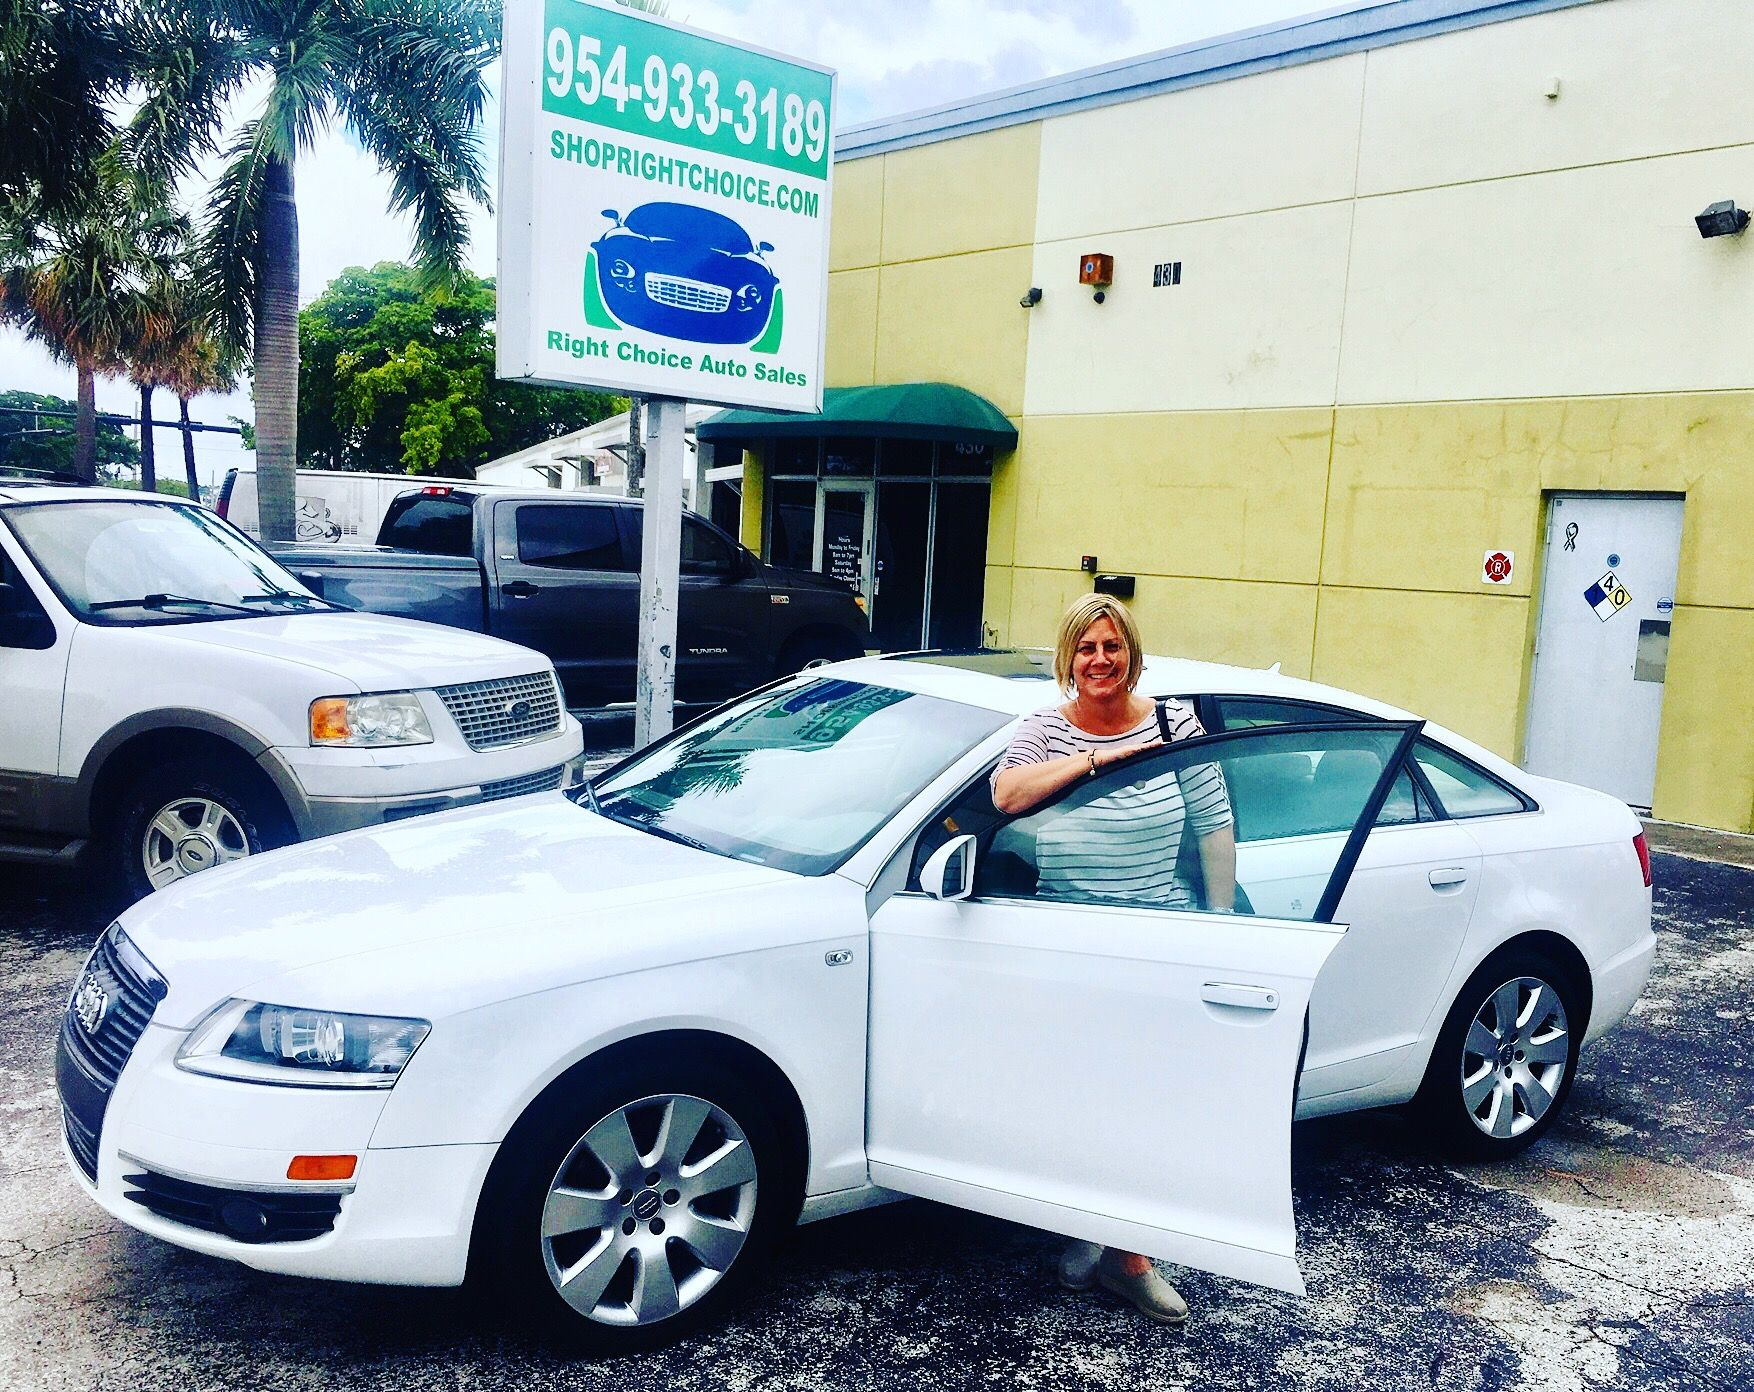 Another Happy Customer At Right Choice Auto Sales In Pompano Beach Fl Irma Bought This Like New 2007 Audi A6 3 2 Quatt Cars For Sale Pompano Beach Used Cars